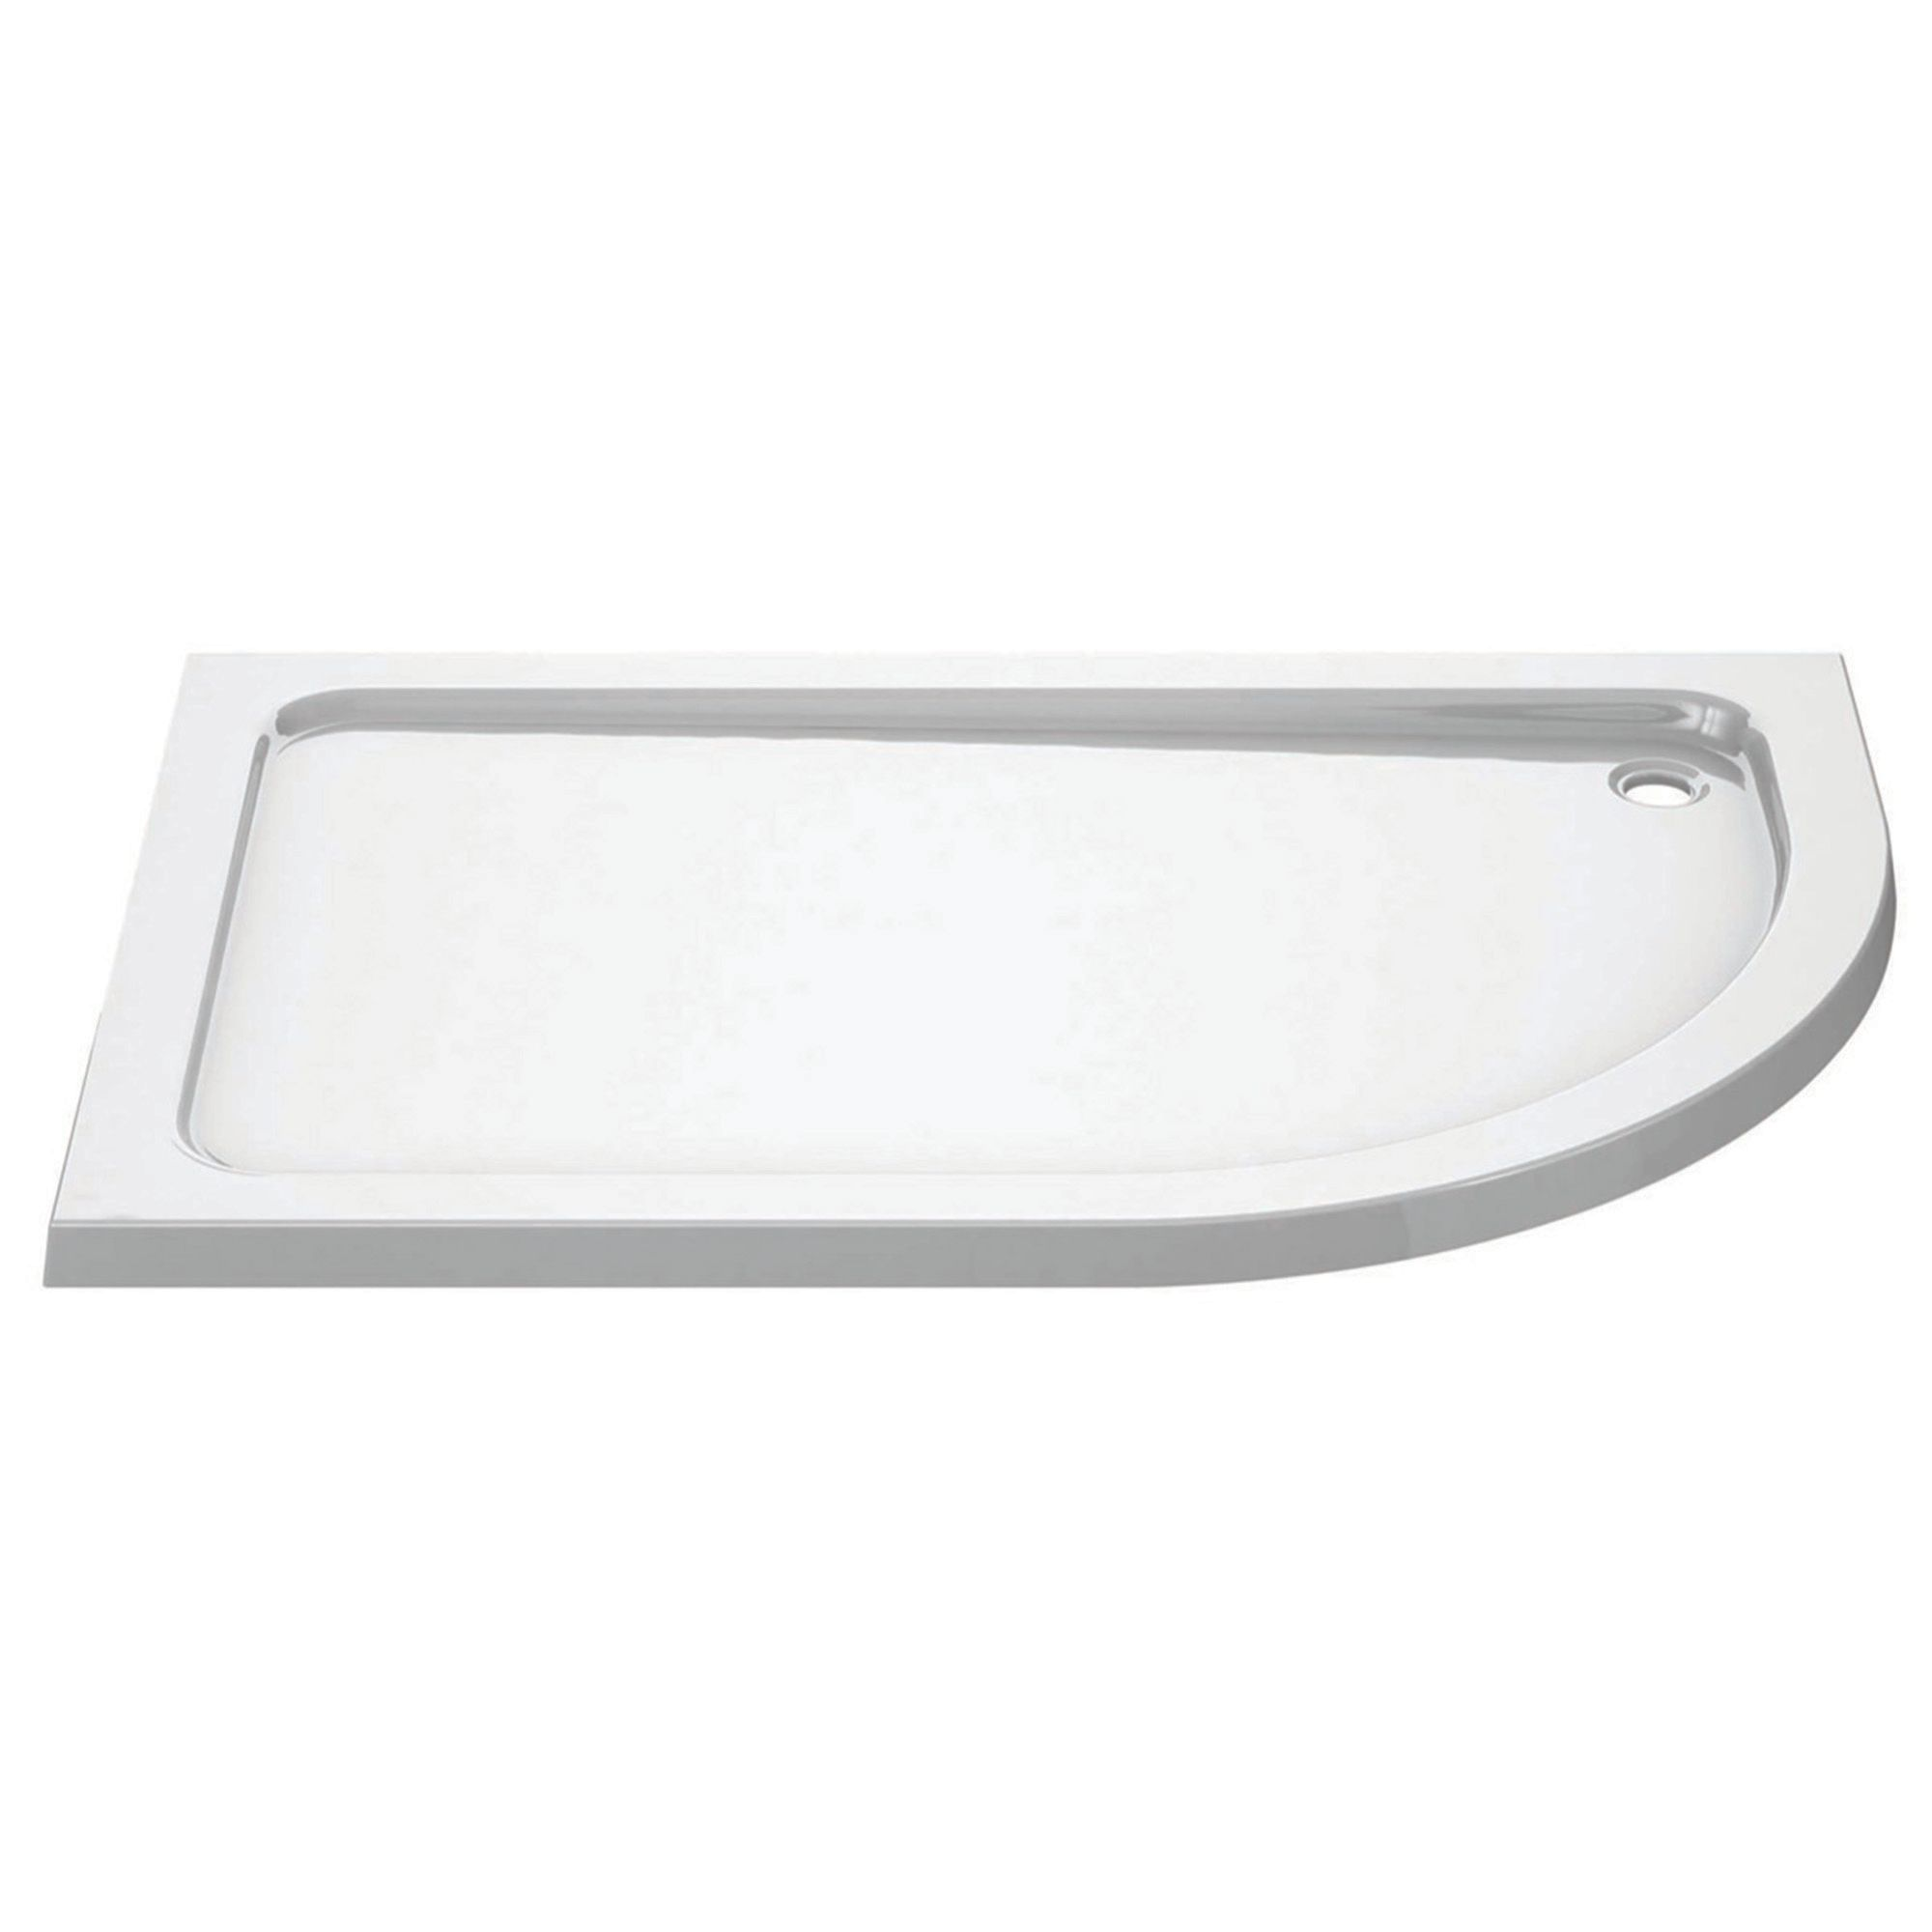 Shower Trays | City Plumbing